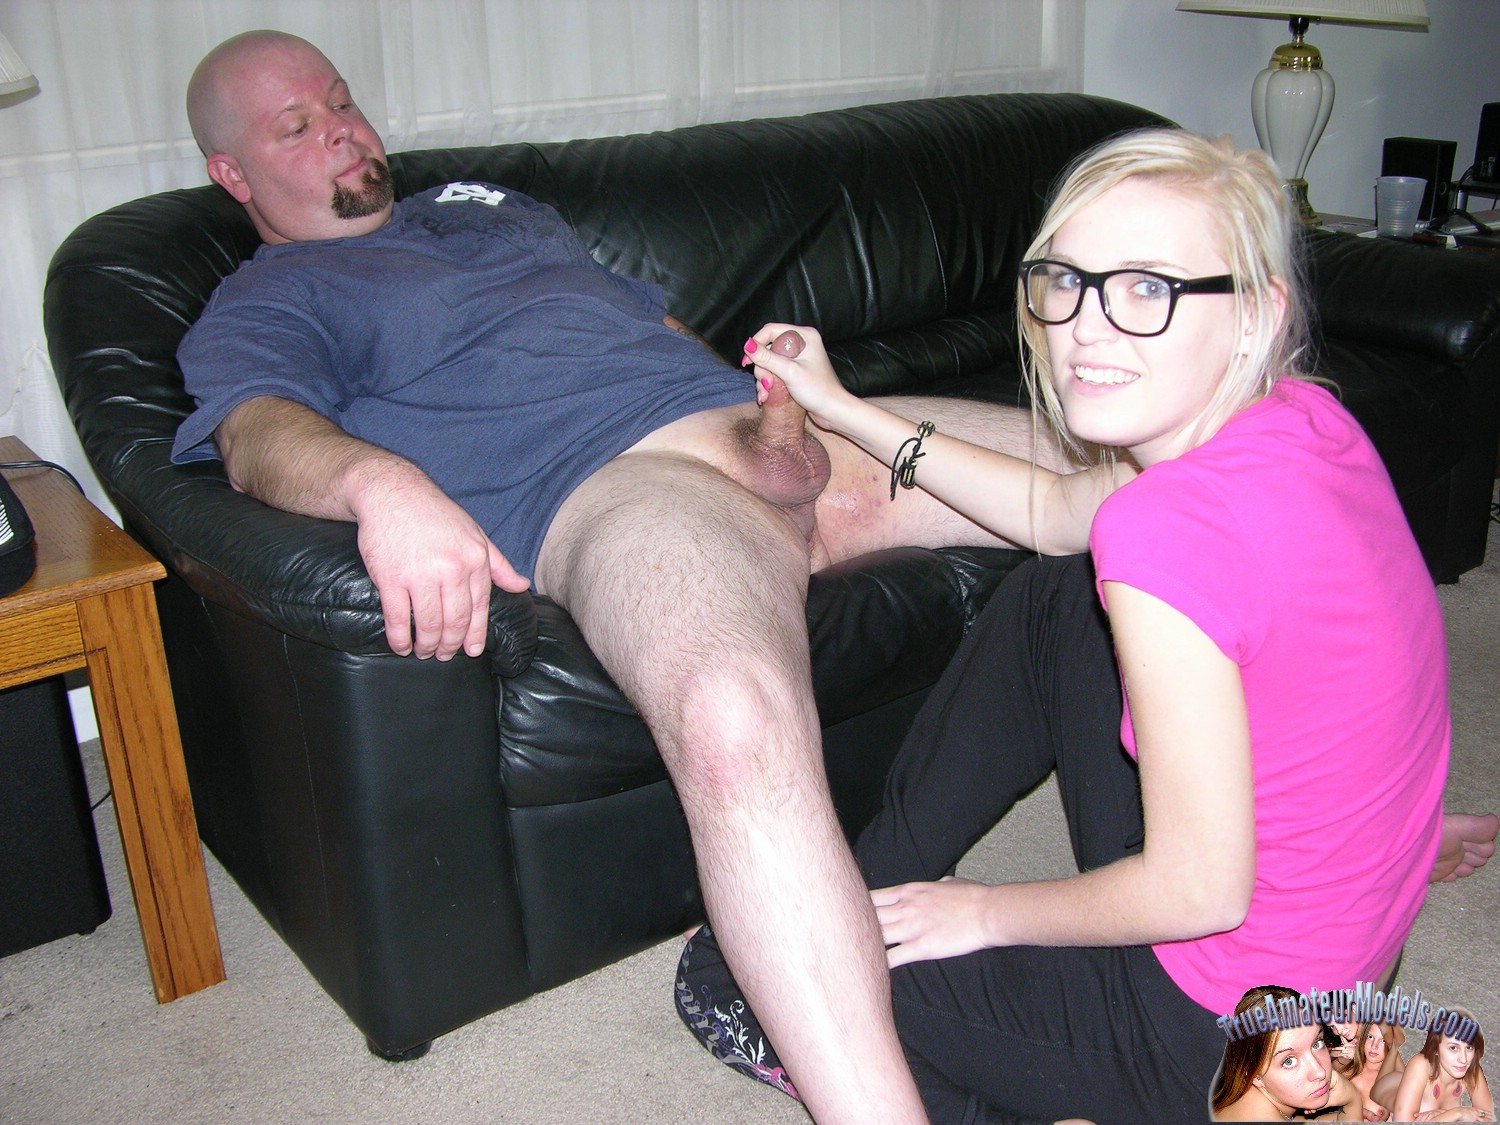 Sorry, that true amateur girl with nerd glasses blowjob pity